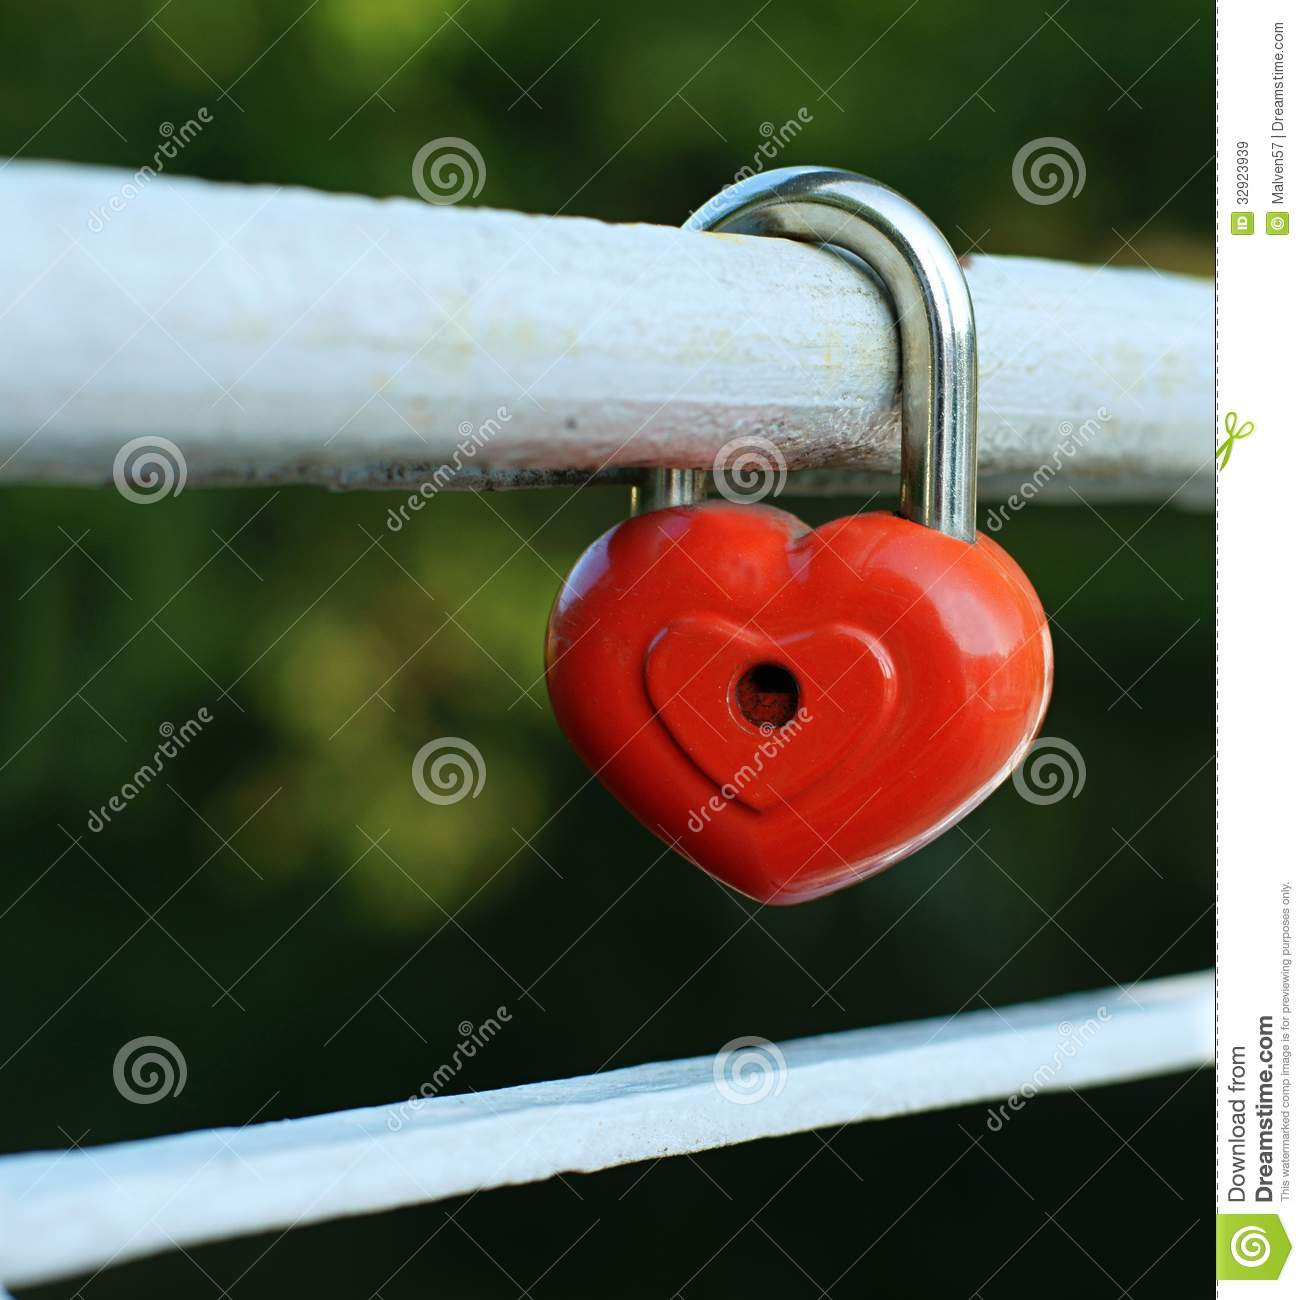 Symbol Of Constant Love And Devotion Royalty Free Stock